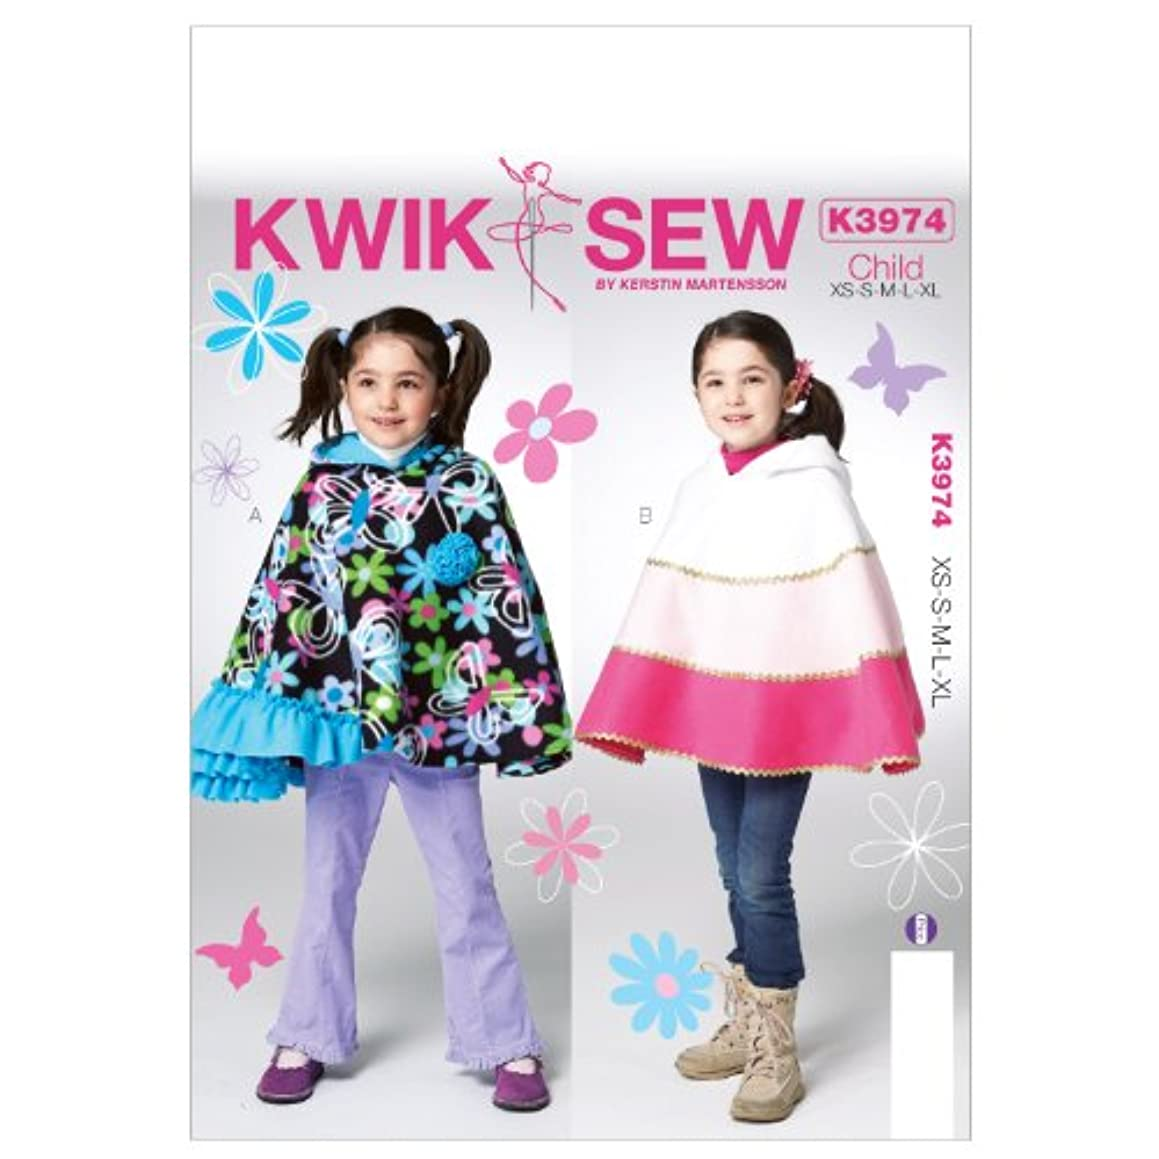 KWIK-SEW PATTERNS K3974 Children/Girls Capes Sewing Template